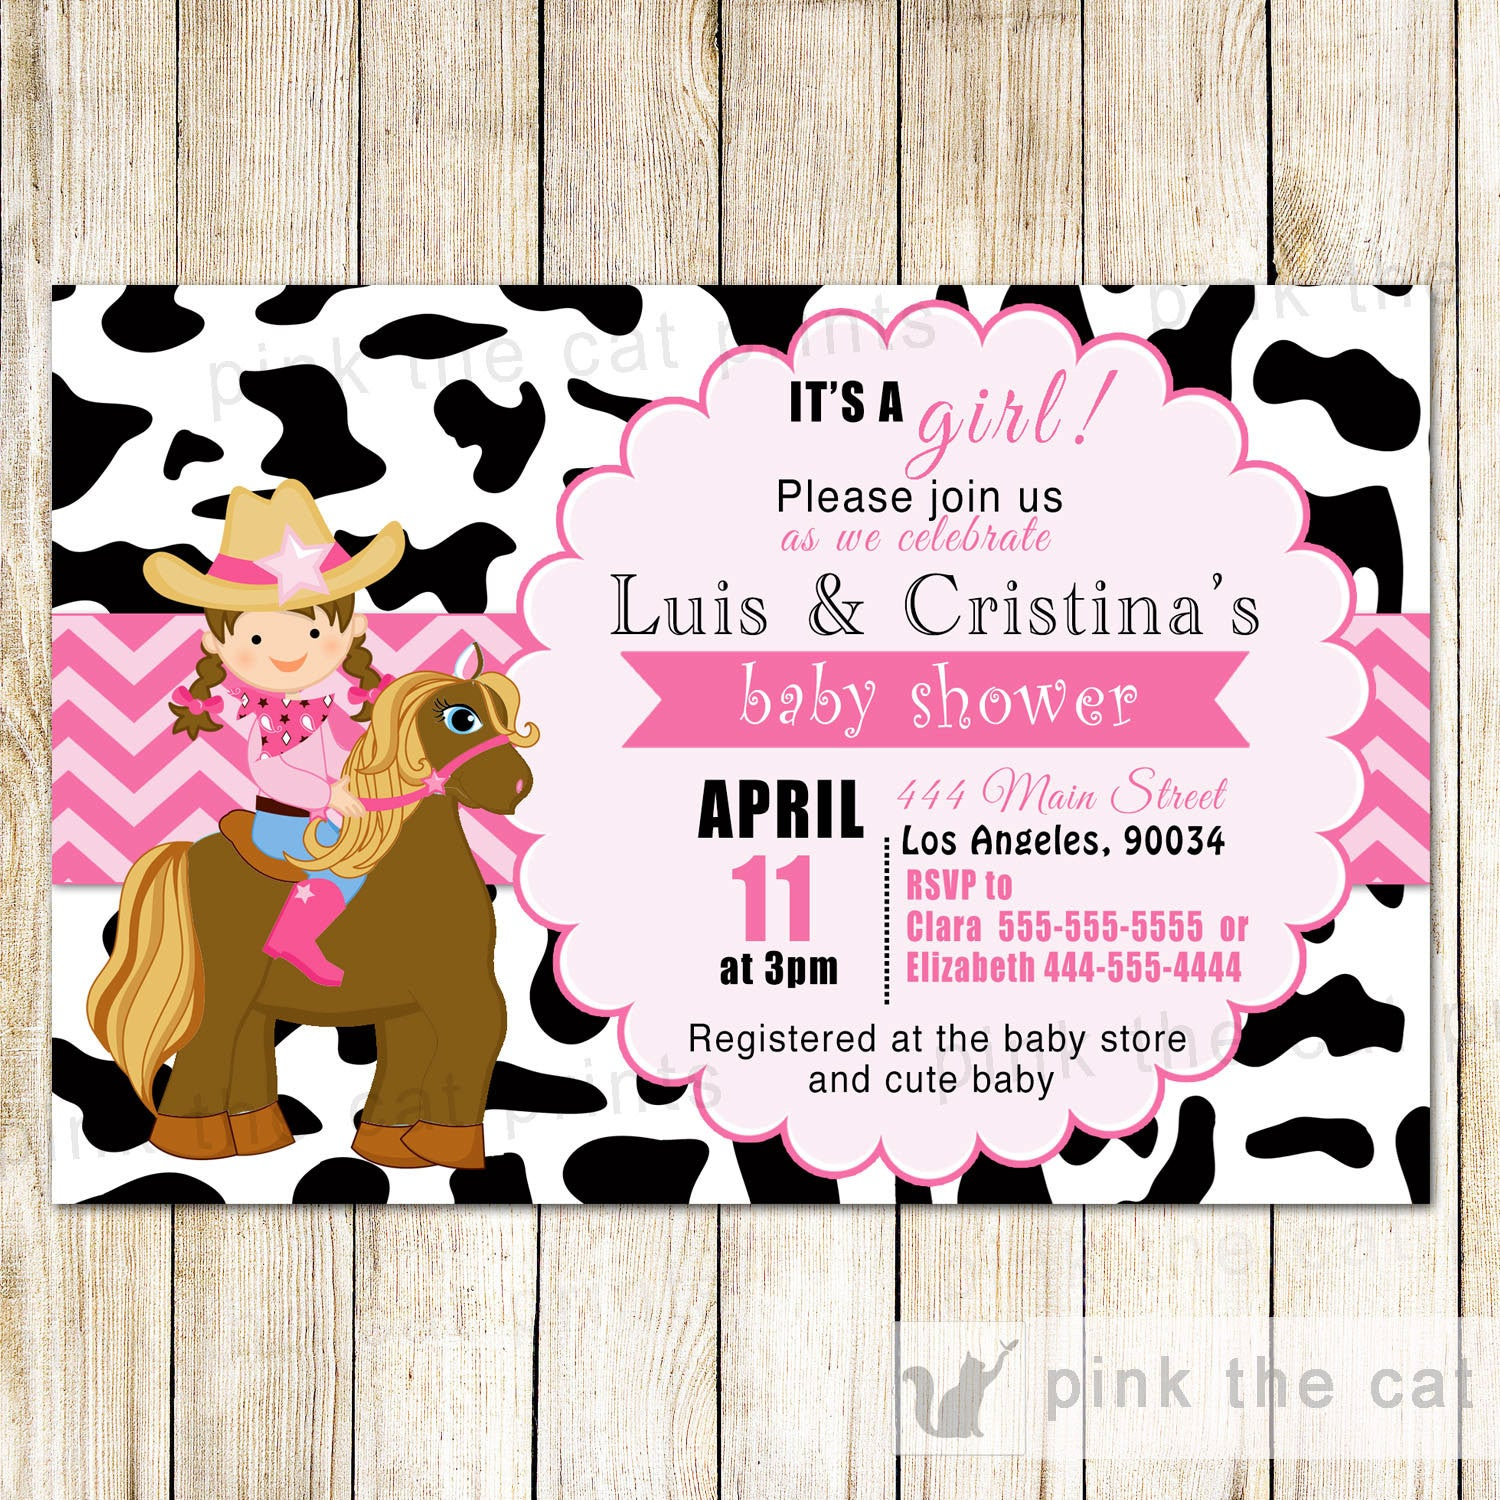 Cowgirl Invitation Girl Birthday Baby Shower Horse – Pink The Cat